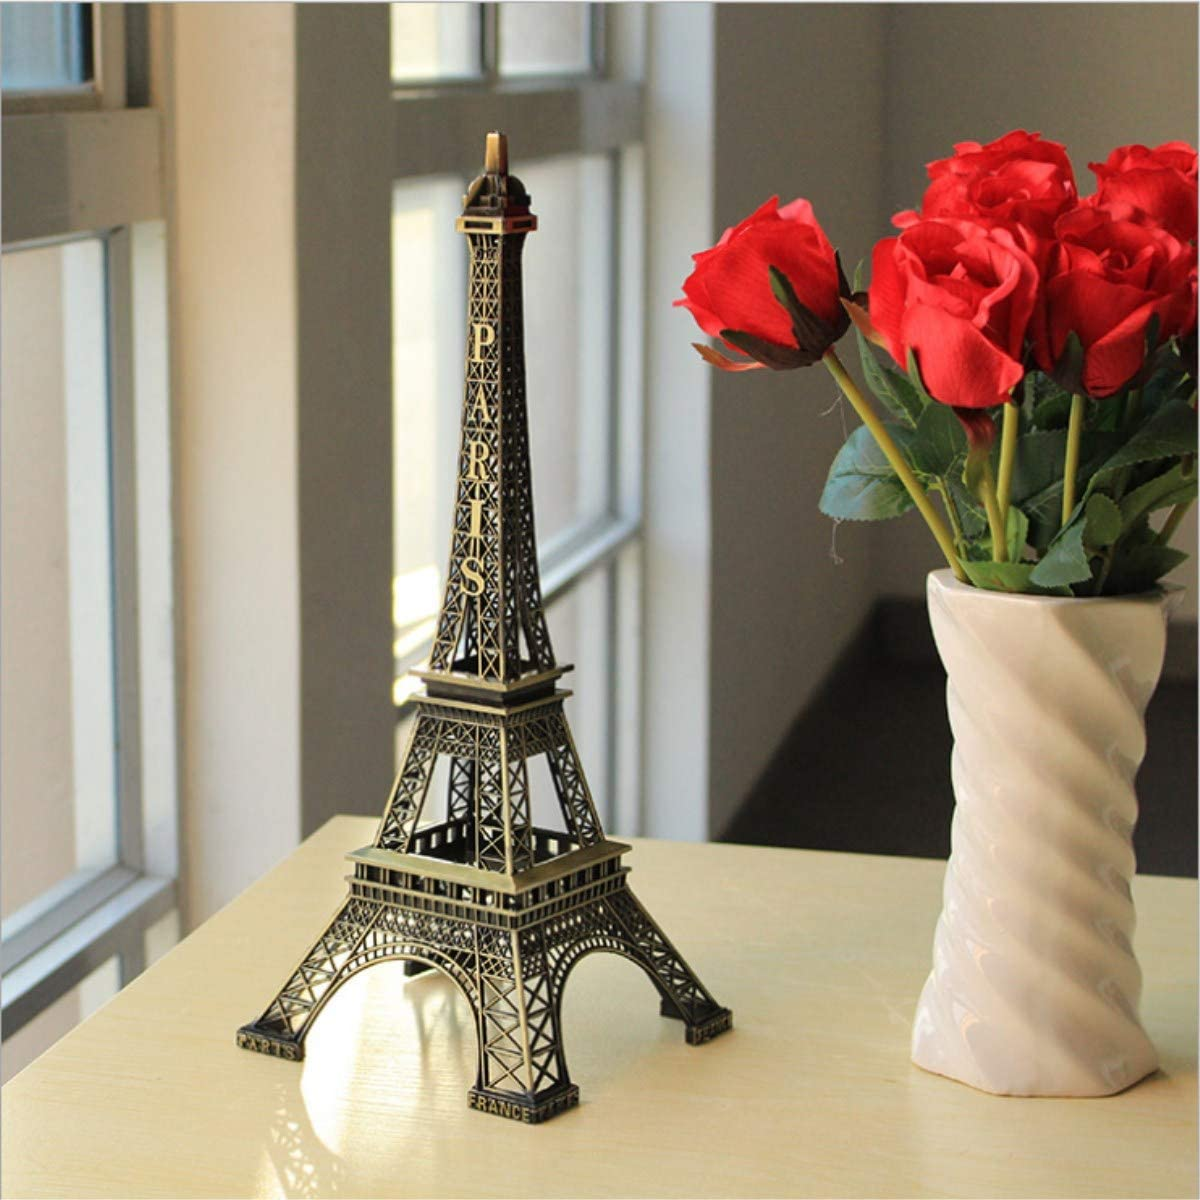 Eiffel Tower Paris France Metal Stand Statue Model for Home Decor or Wedding Theme (12.5 Inches)